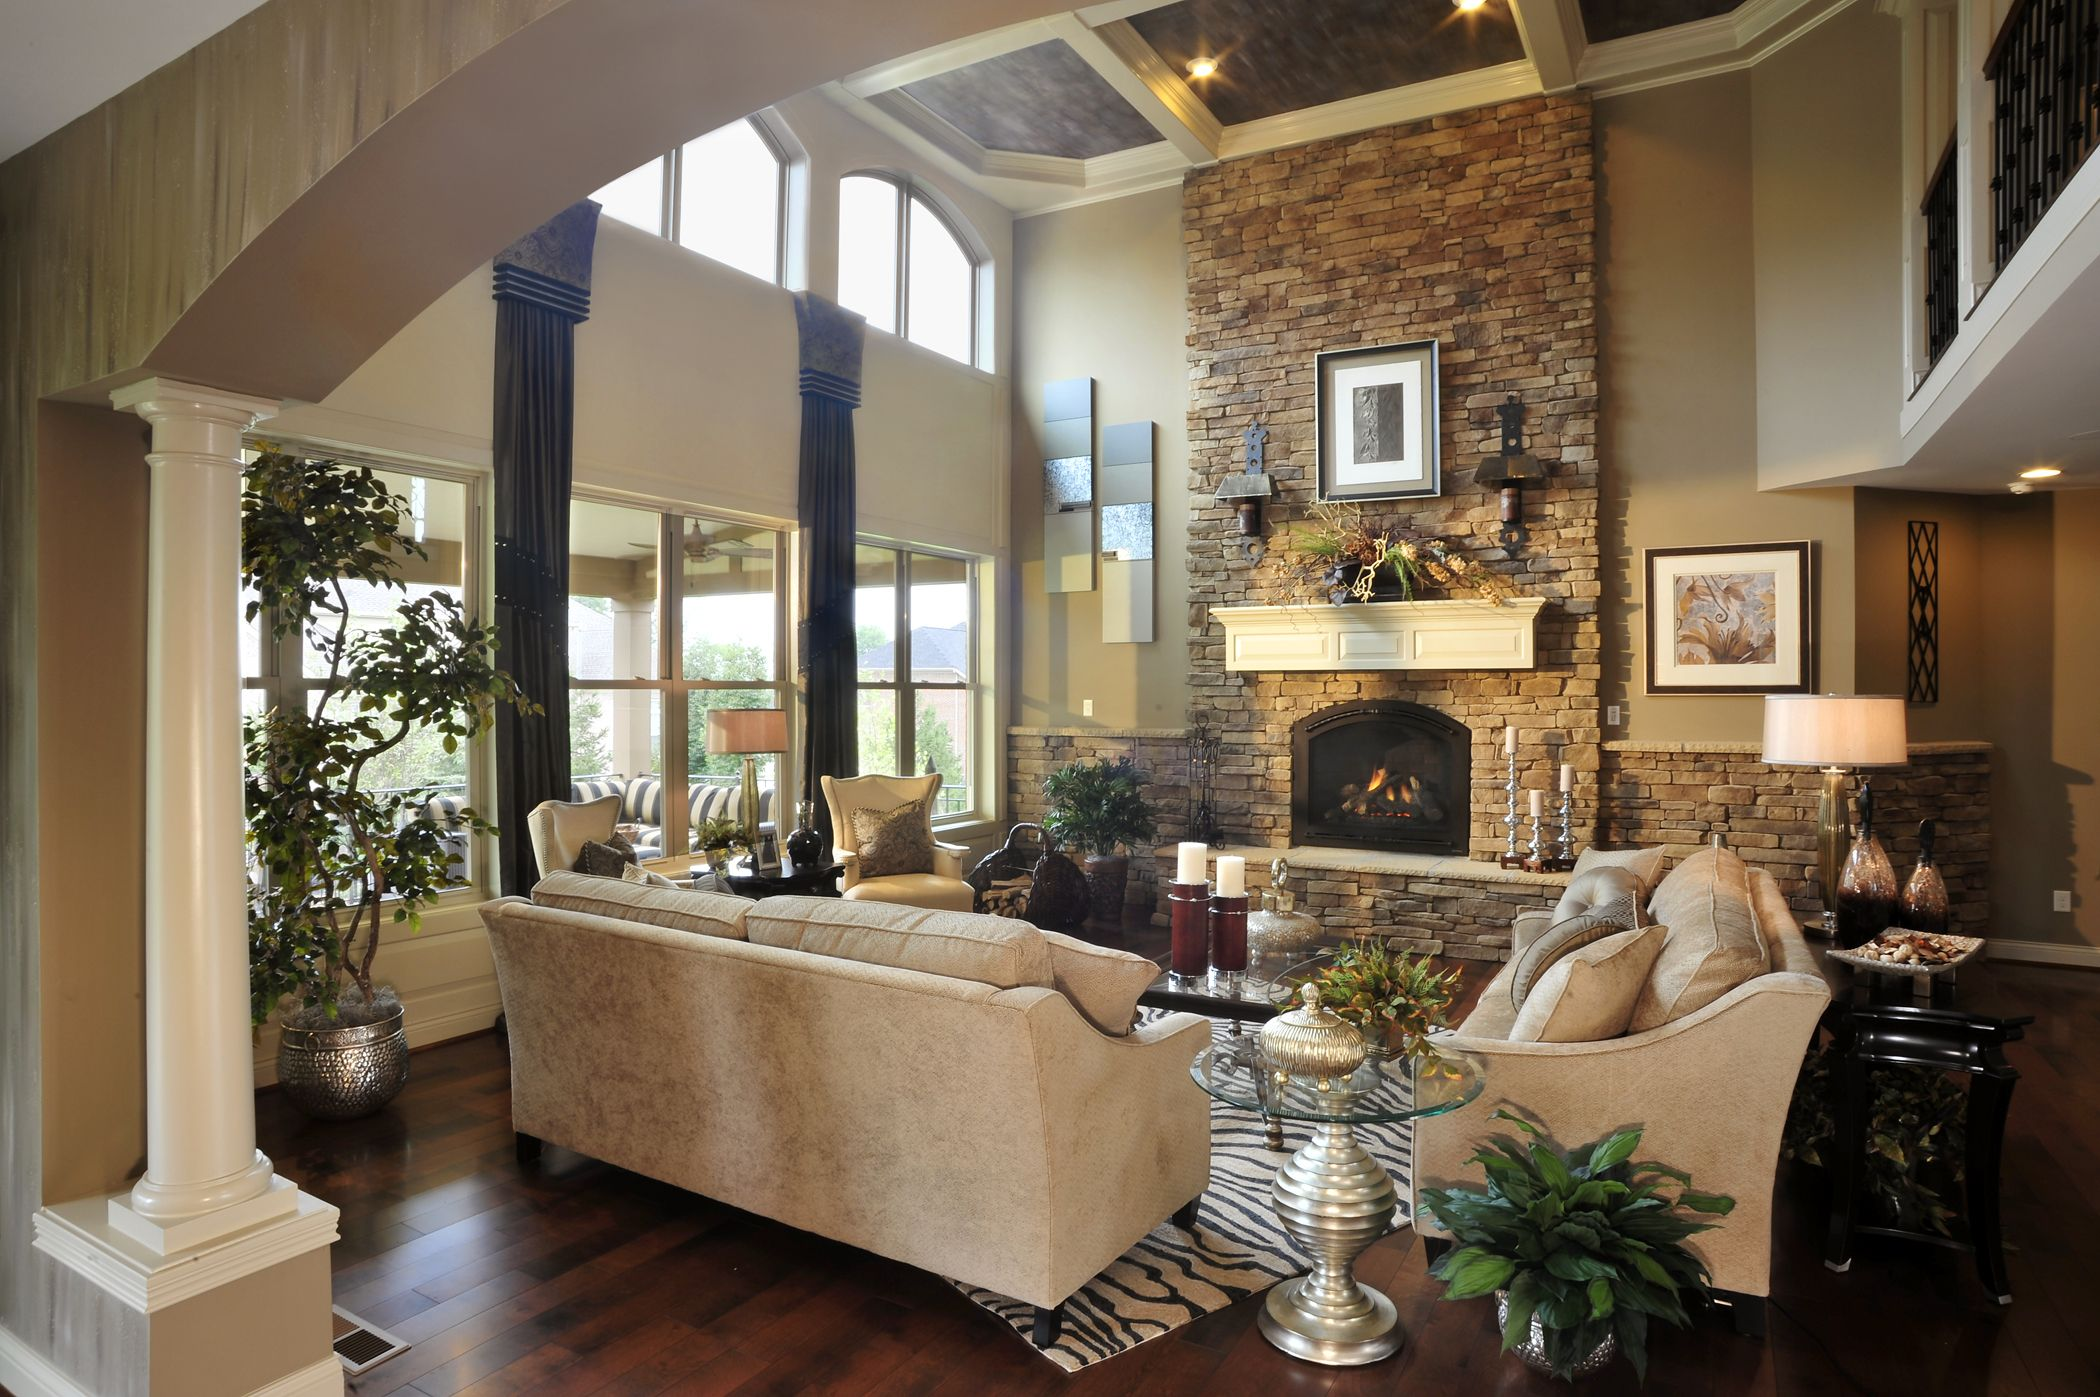 Beautiful living space with story stone fireplace and splendid